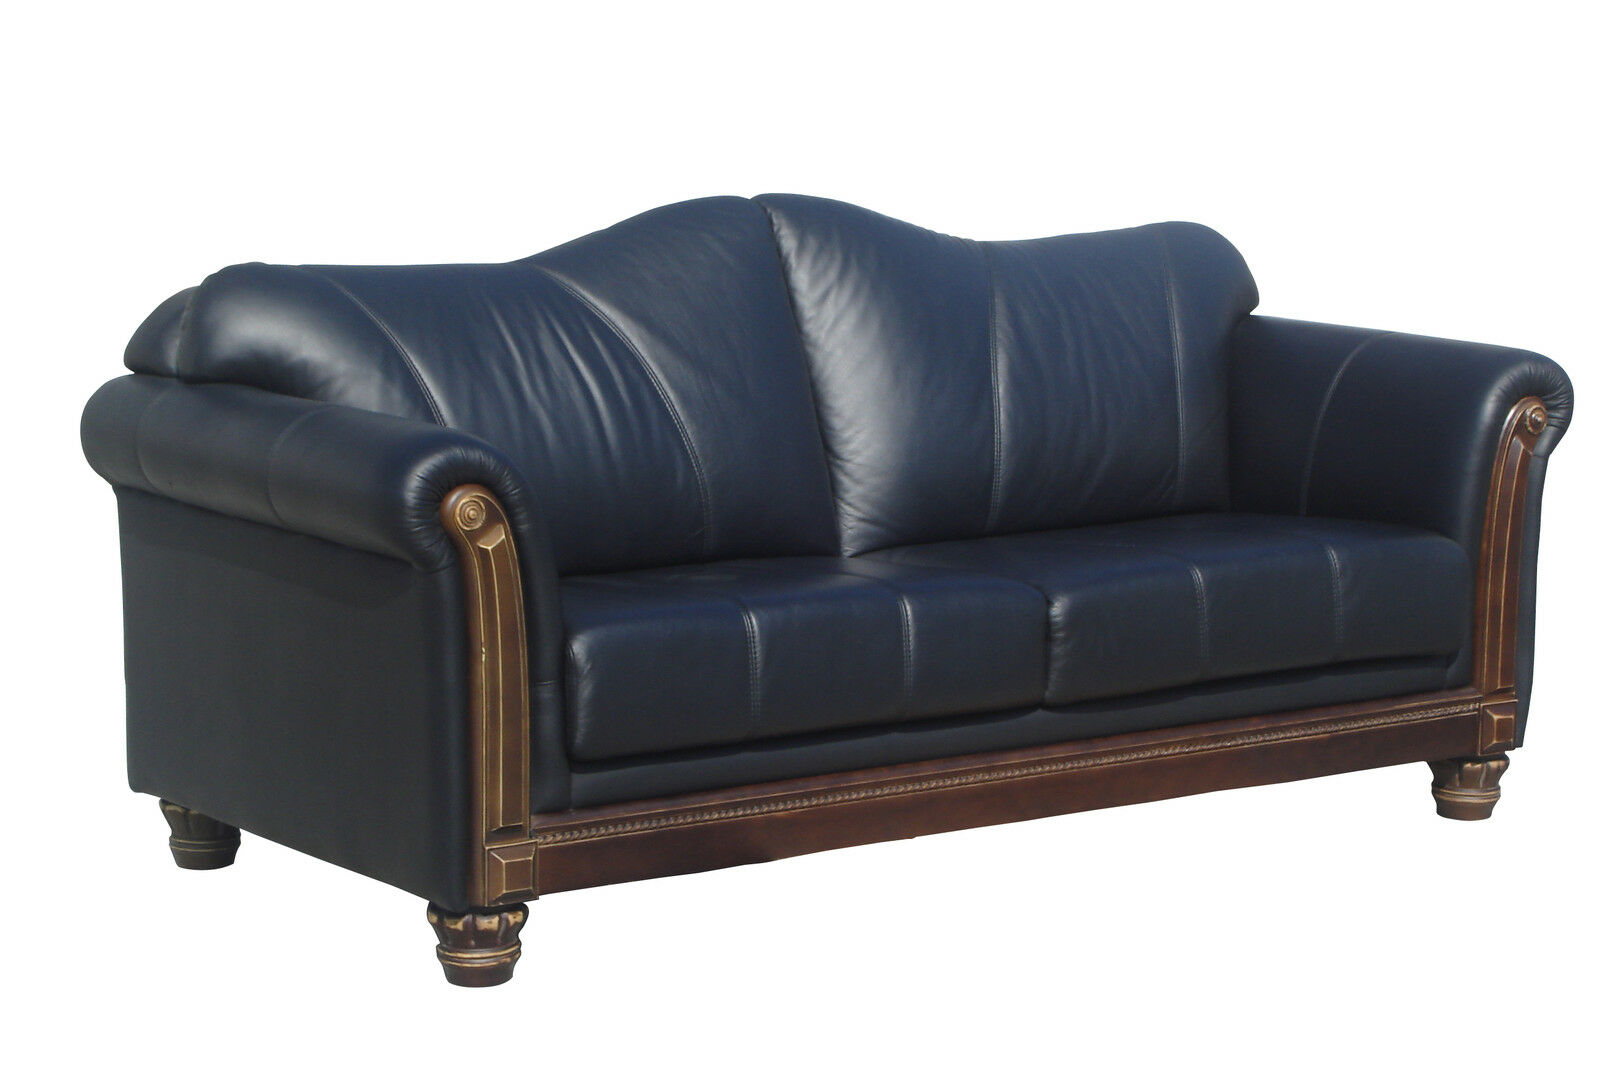 kolonialstil ledersofa lederm bel leder sofa 3 sitzer couch 278 3 3023 sofort eur 949 00. Black Bedroom Furniture Sets. Home Design Ideas